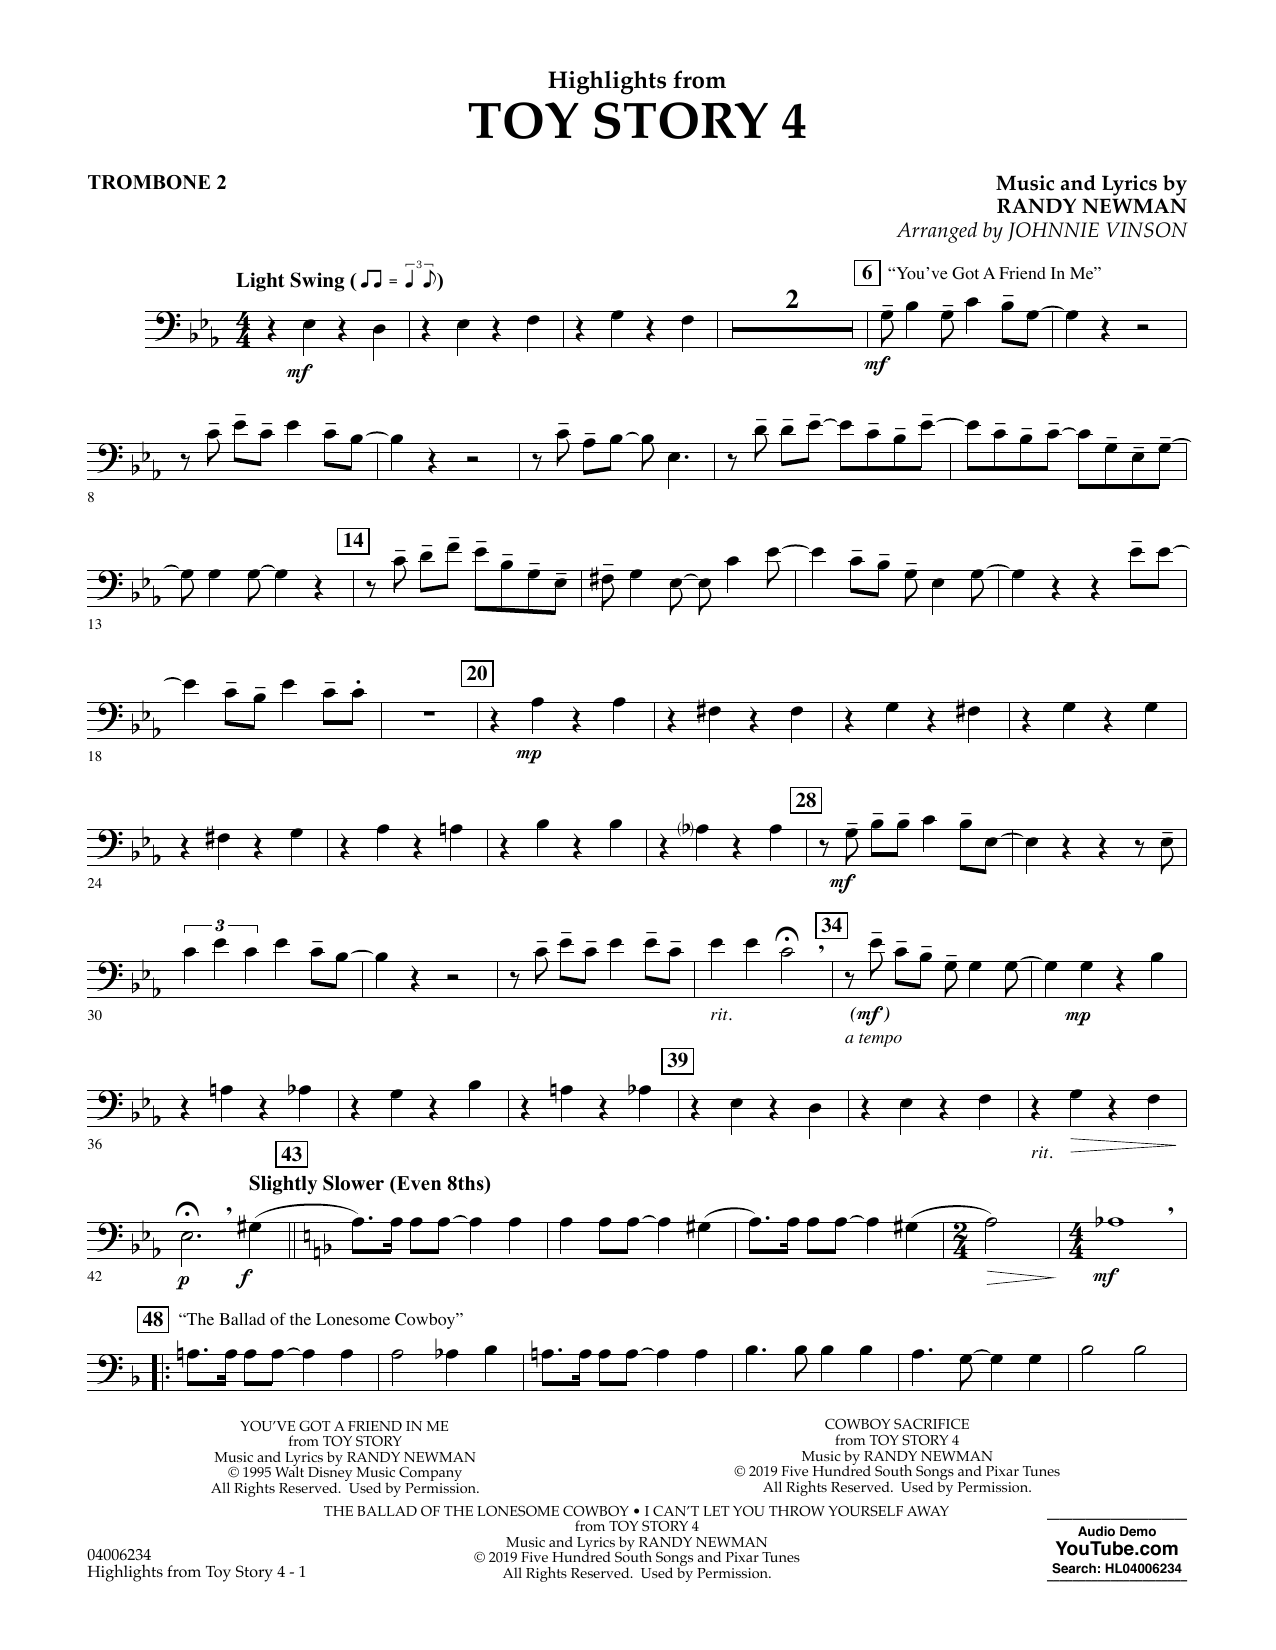 Highlights from Toy Story 4 (arr. Johnnie Vinson) - Trombone 2 (Concert Band)